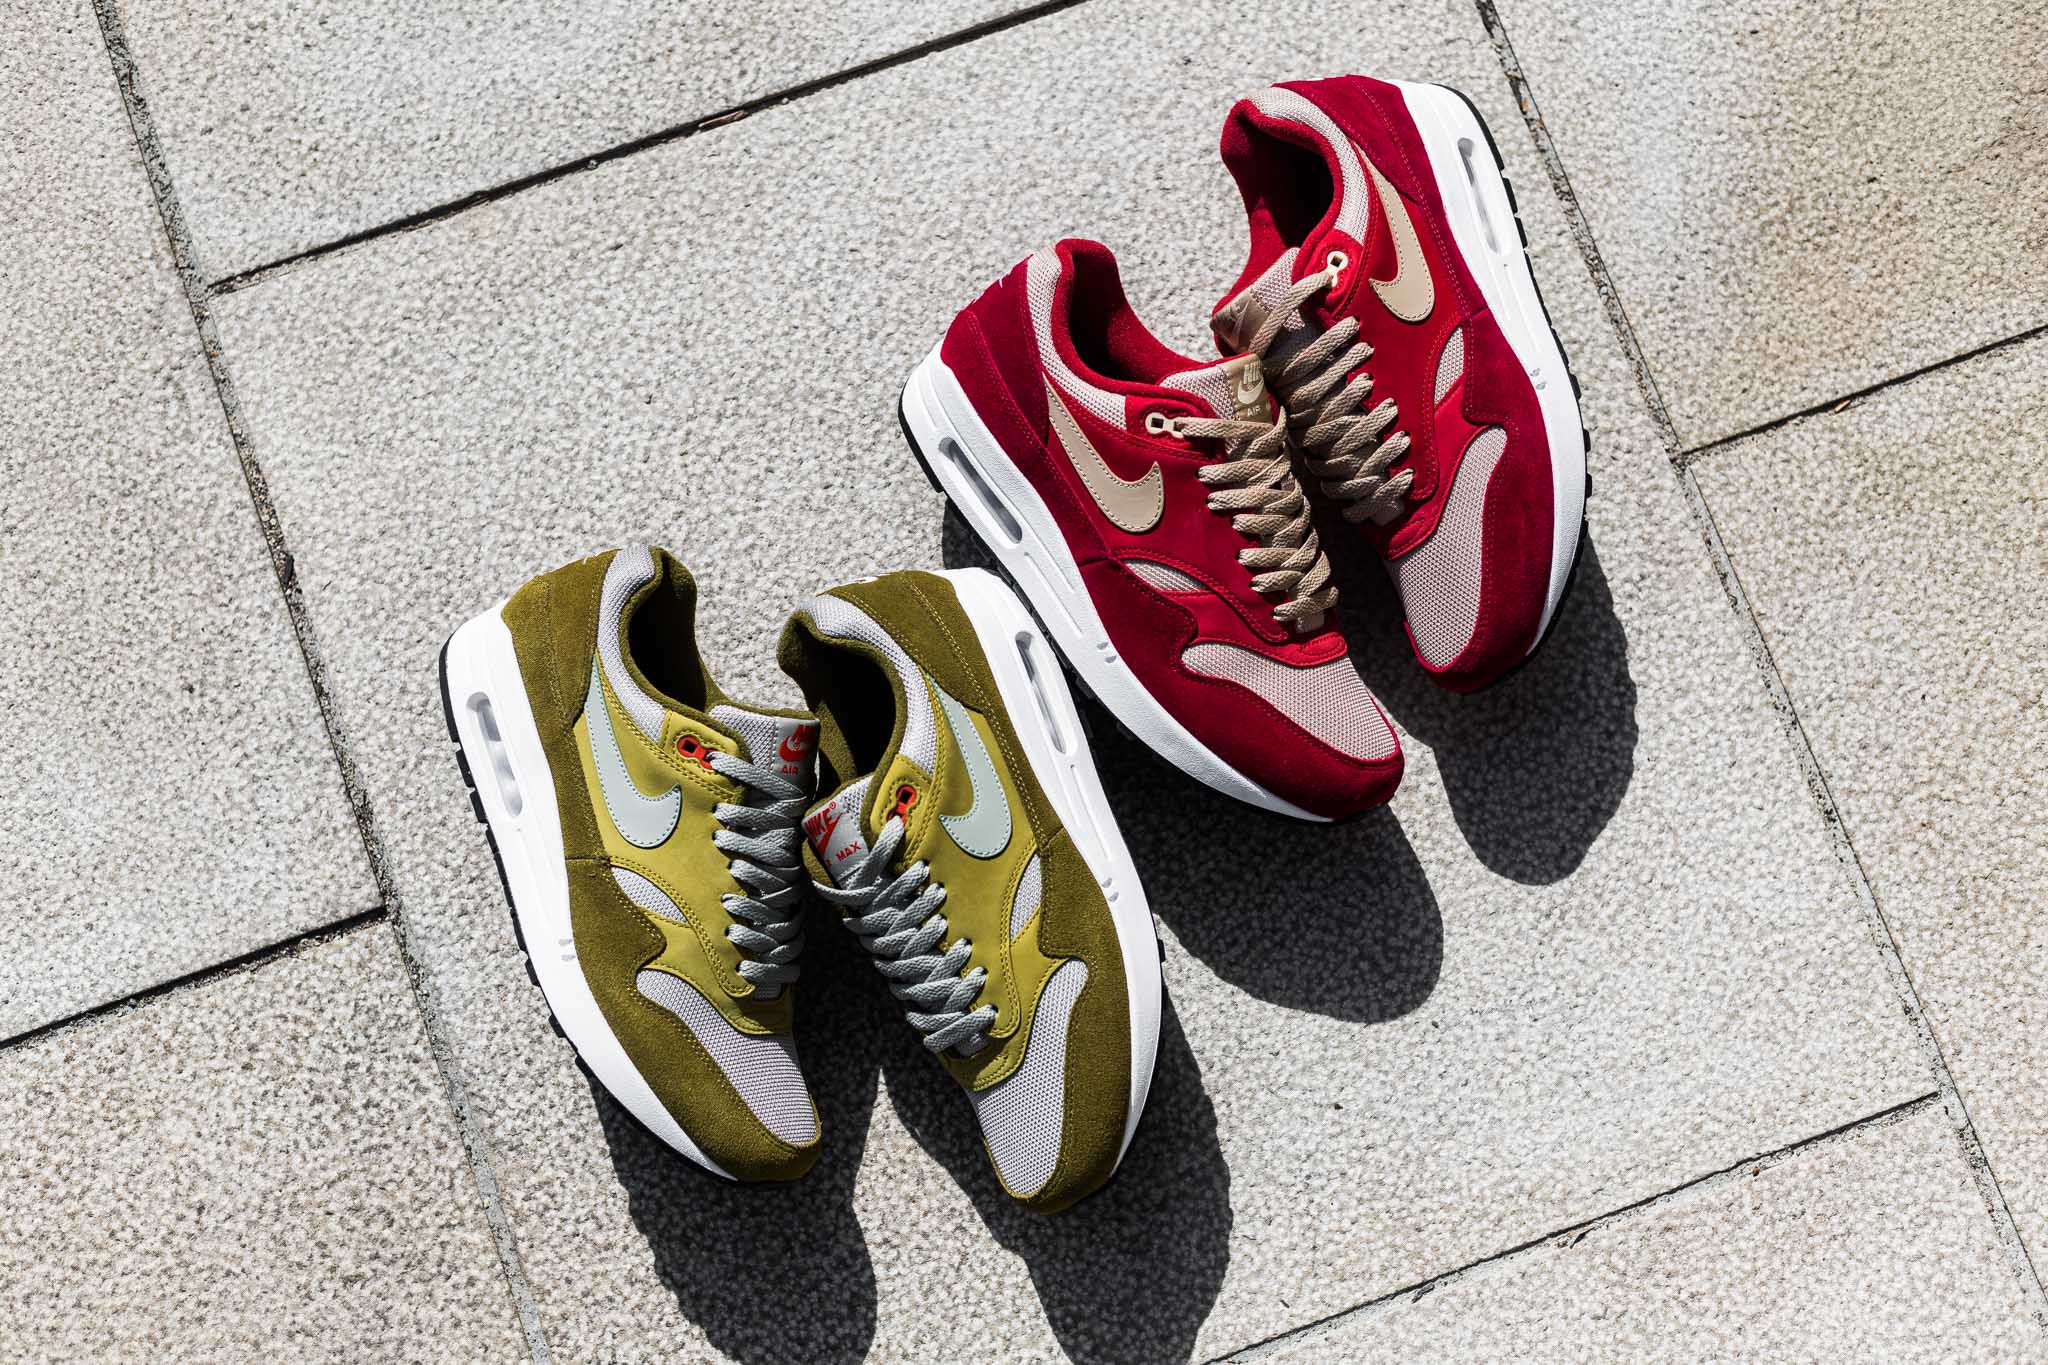 premium selection 4e148 2dd27 The latest iteration of the Air Max 1 draws inspiration from the classic Air  Max 1 Curry from 2003. 15 years later Nike repurposes the original opting  to ...